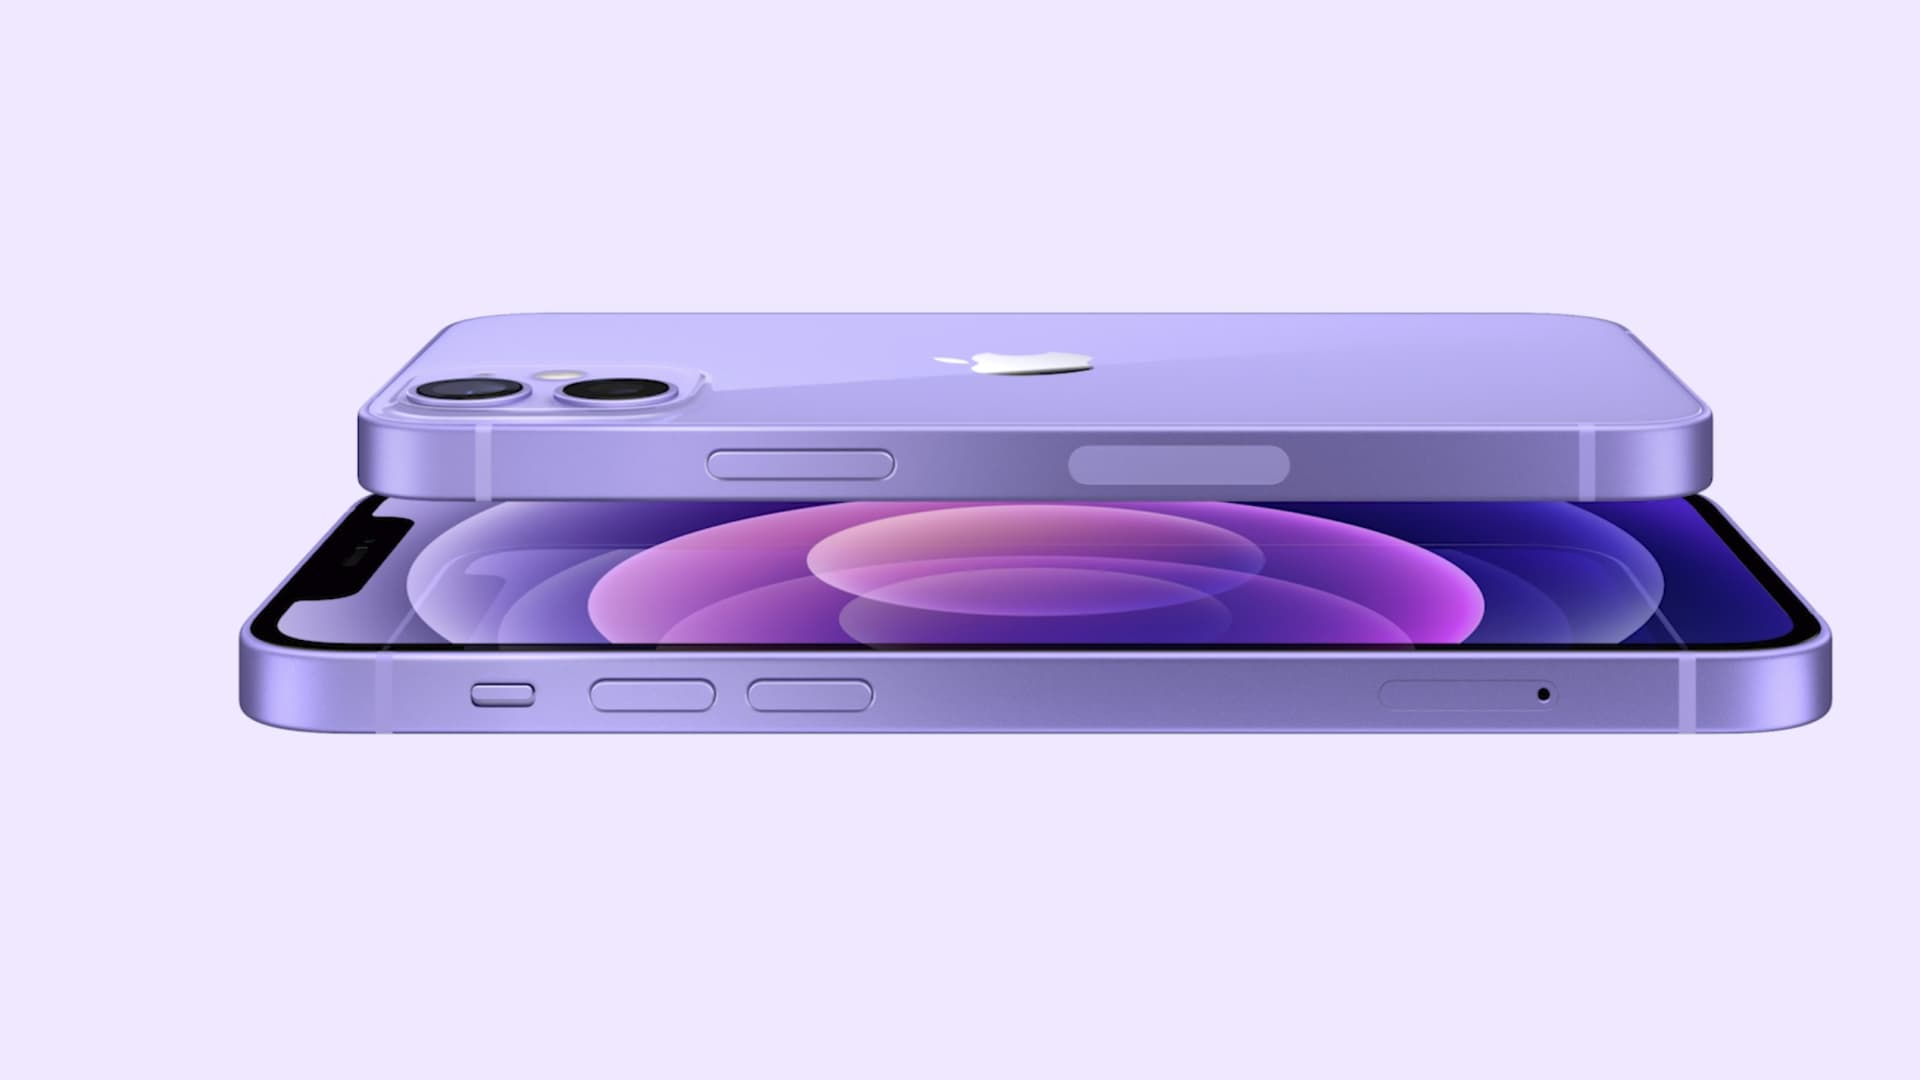 Apple launches a new purple color iPhone for Spring.